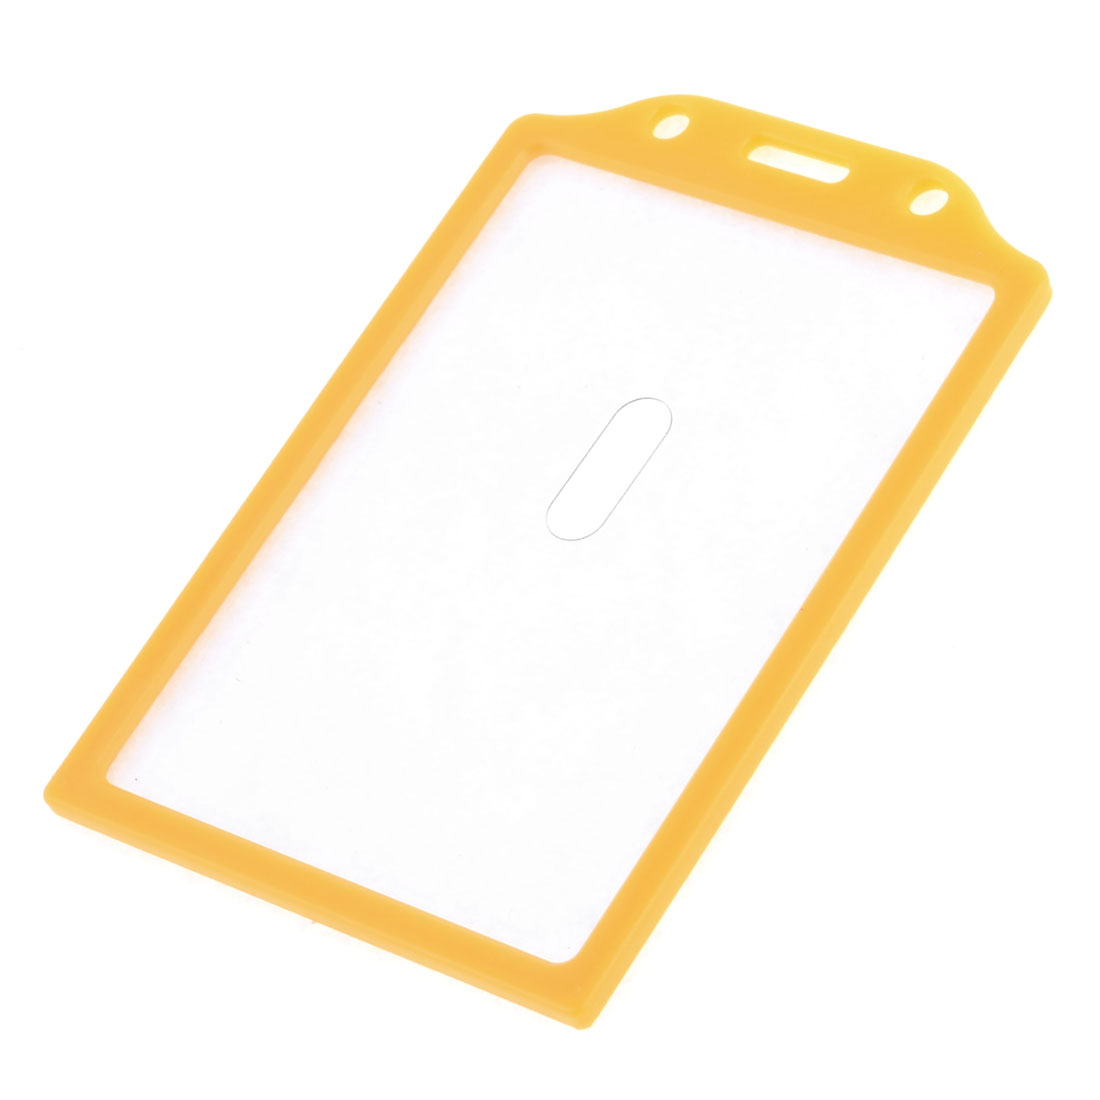 Orange Hard Plastic Vertical Office Working Card Holder